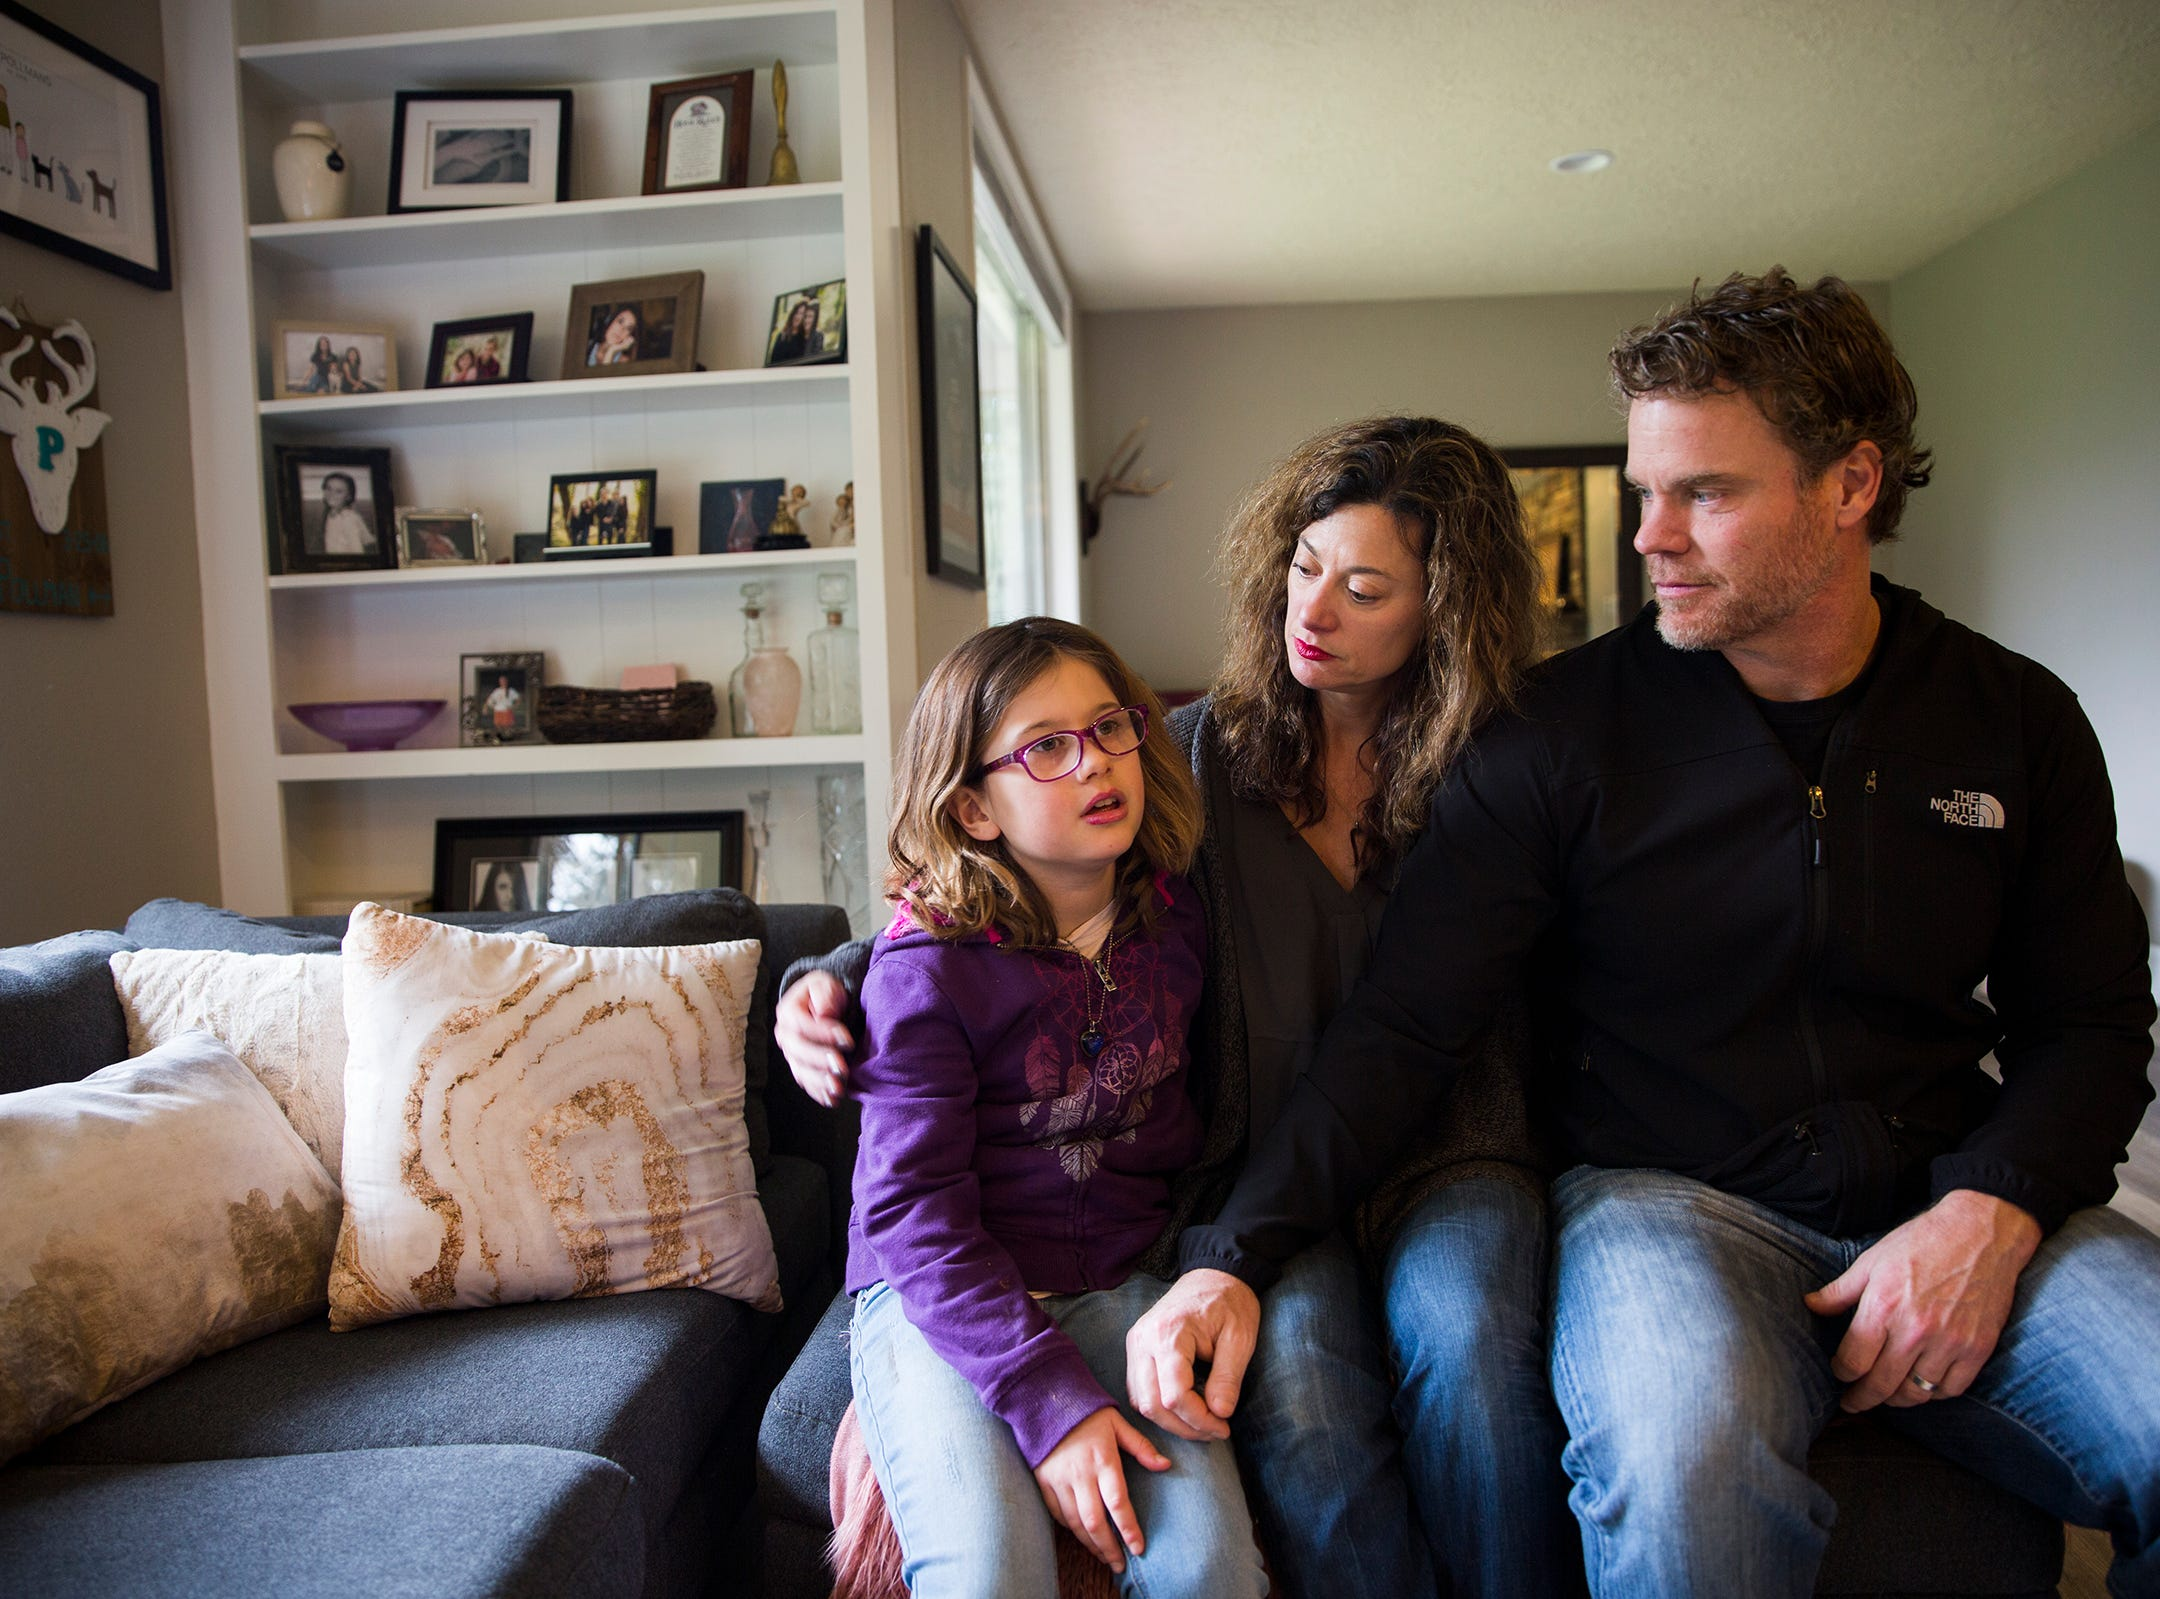 Haley Pollman, 9, and her parents Melissa Pollman and Dean Pollman at their home in Salem on Saturday, Feb. 23, 2019. Haley has Batten disease, a rare disorder of the nervous system.